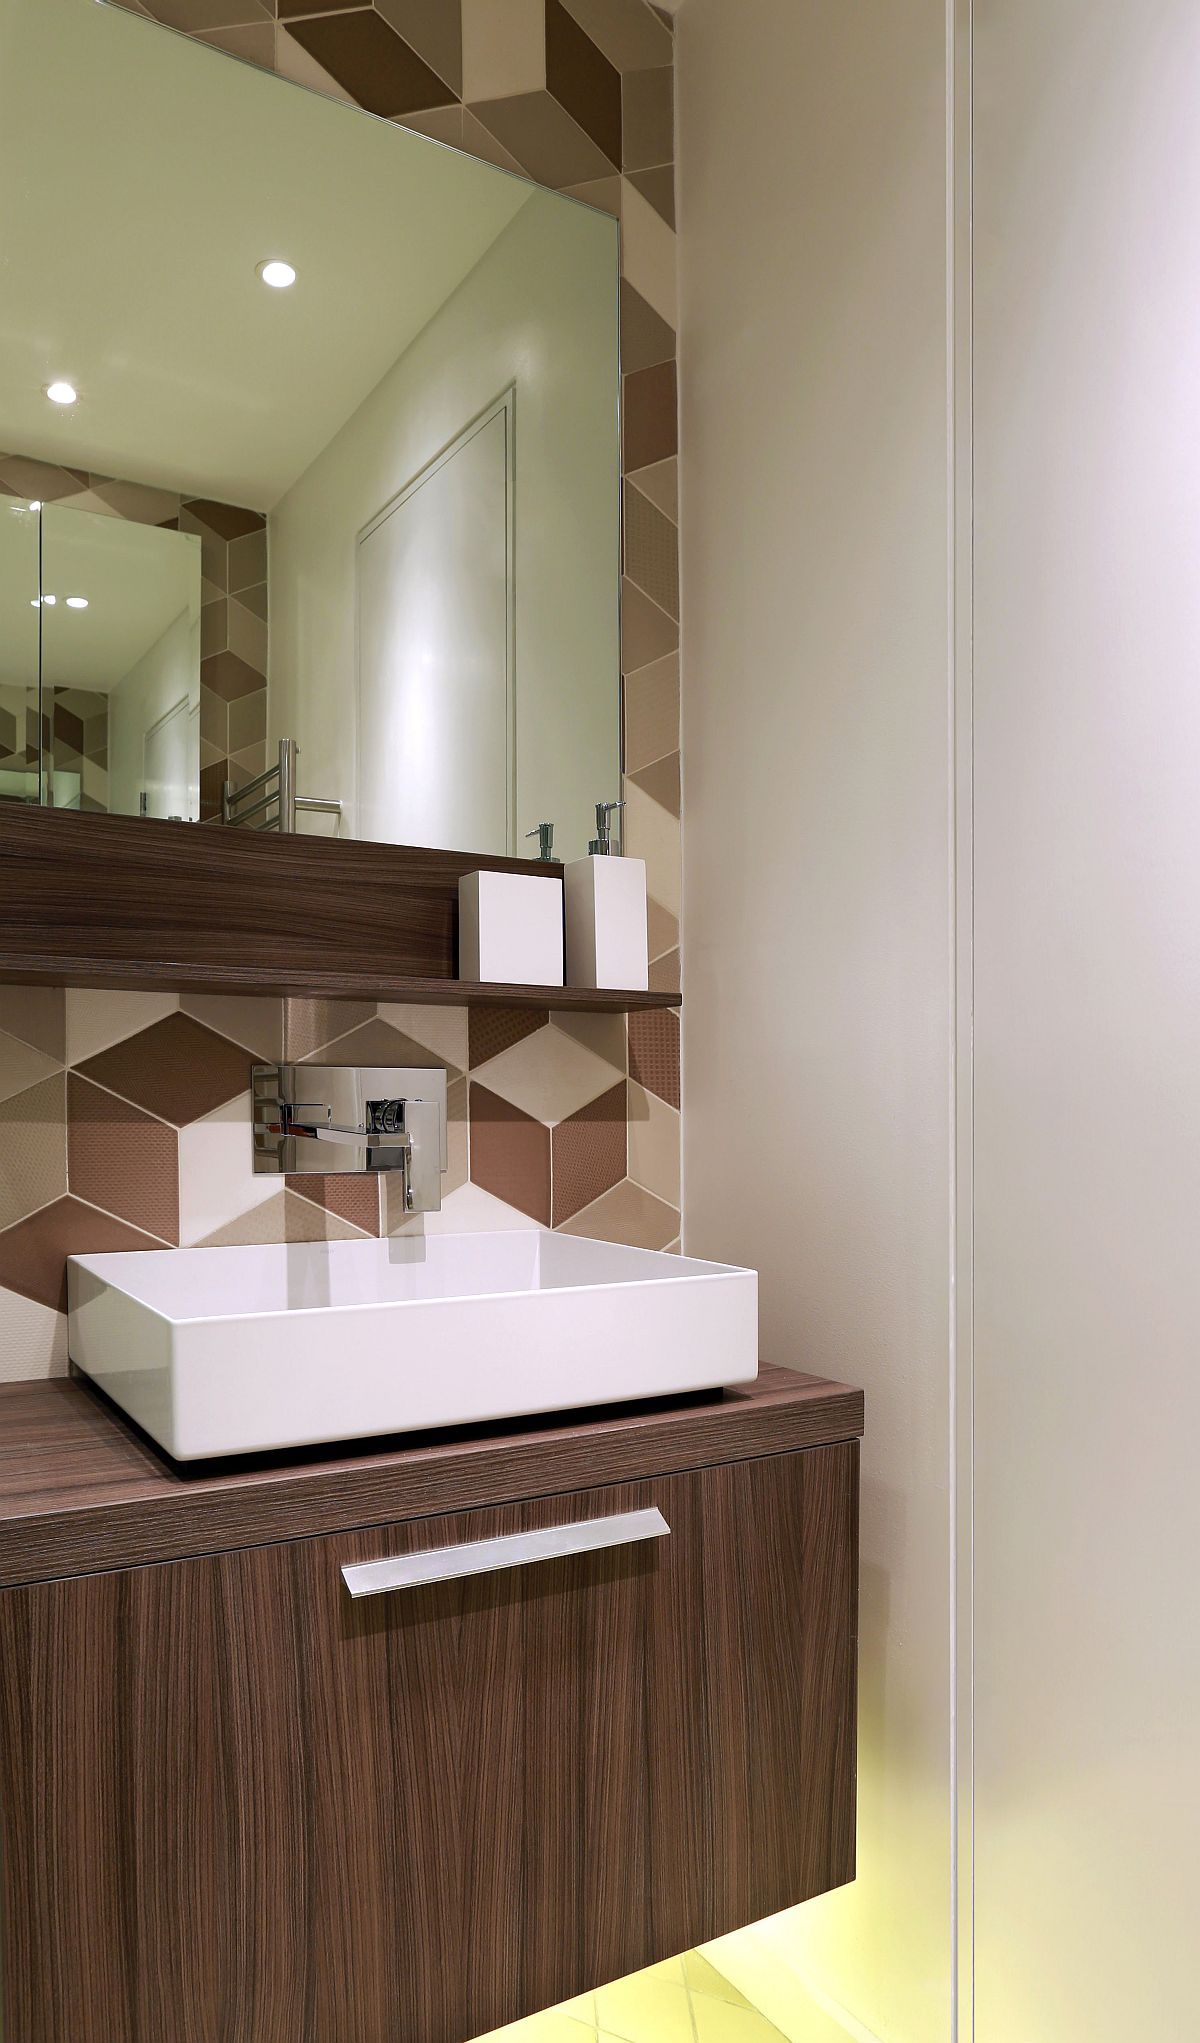 Shower room with a geometric backdrop